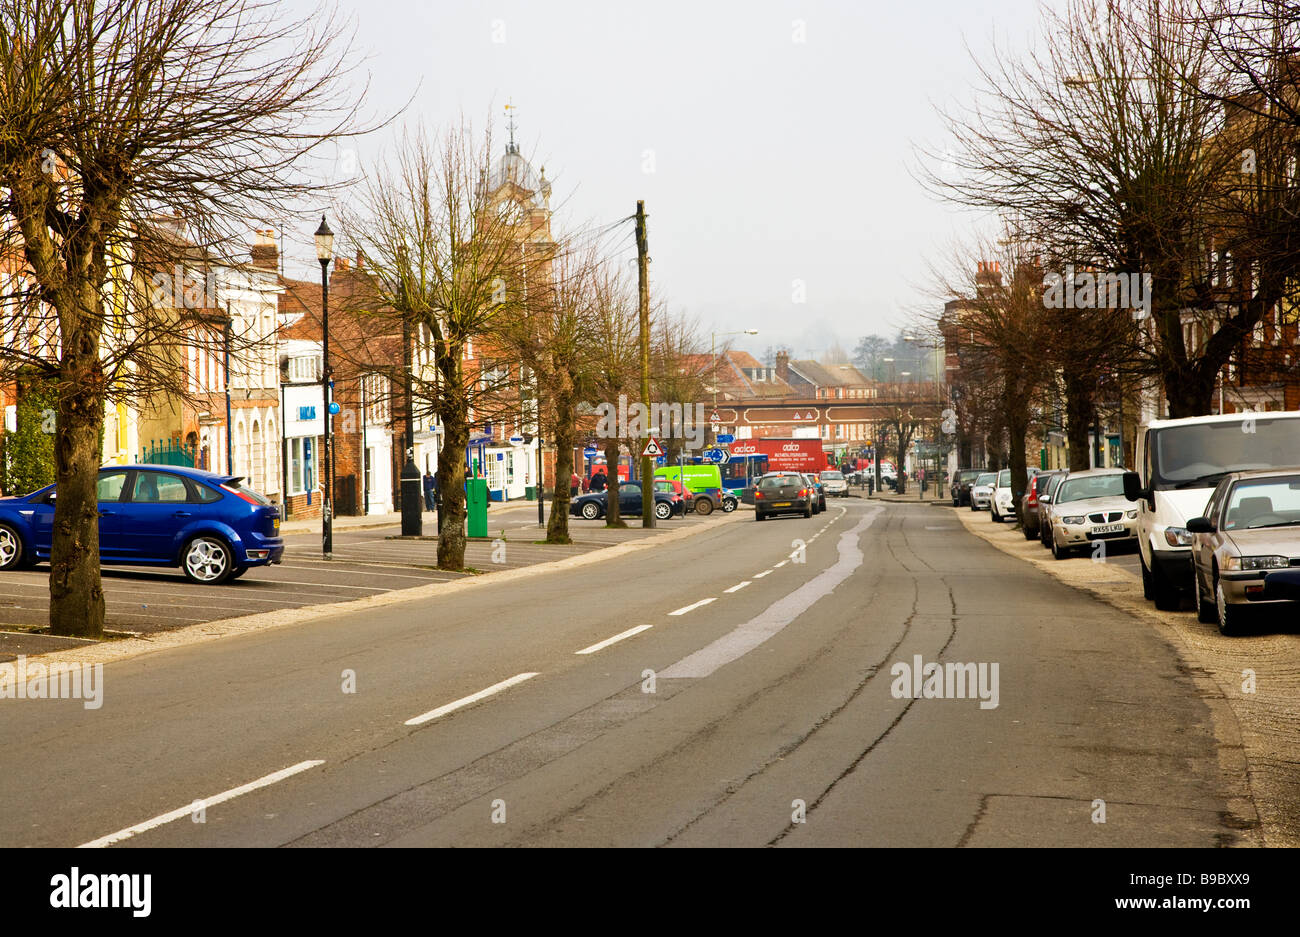 View along the High Street in Hungerford Berkshire England UK with the Town Hall in the distance - Stock Image